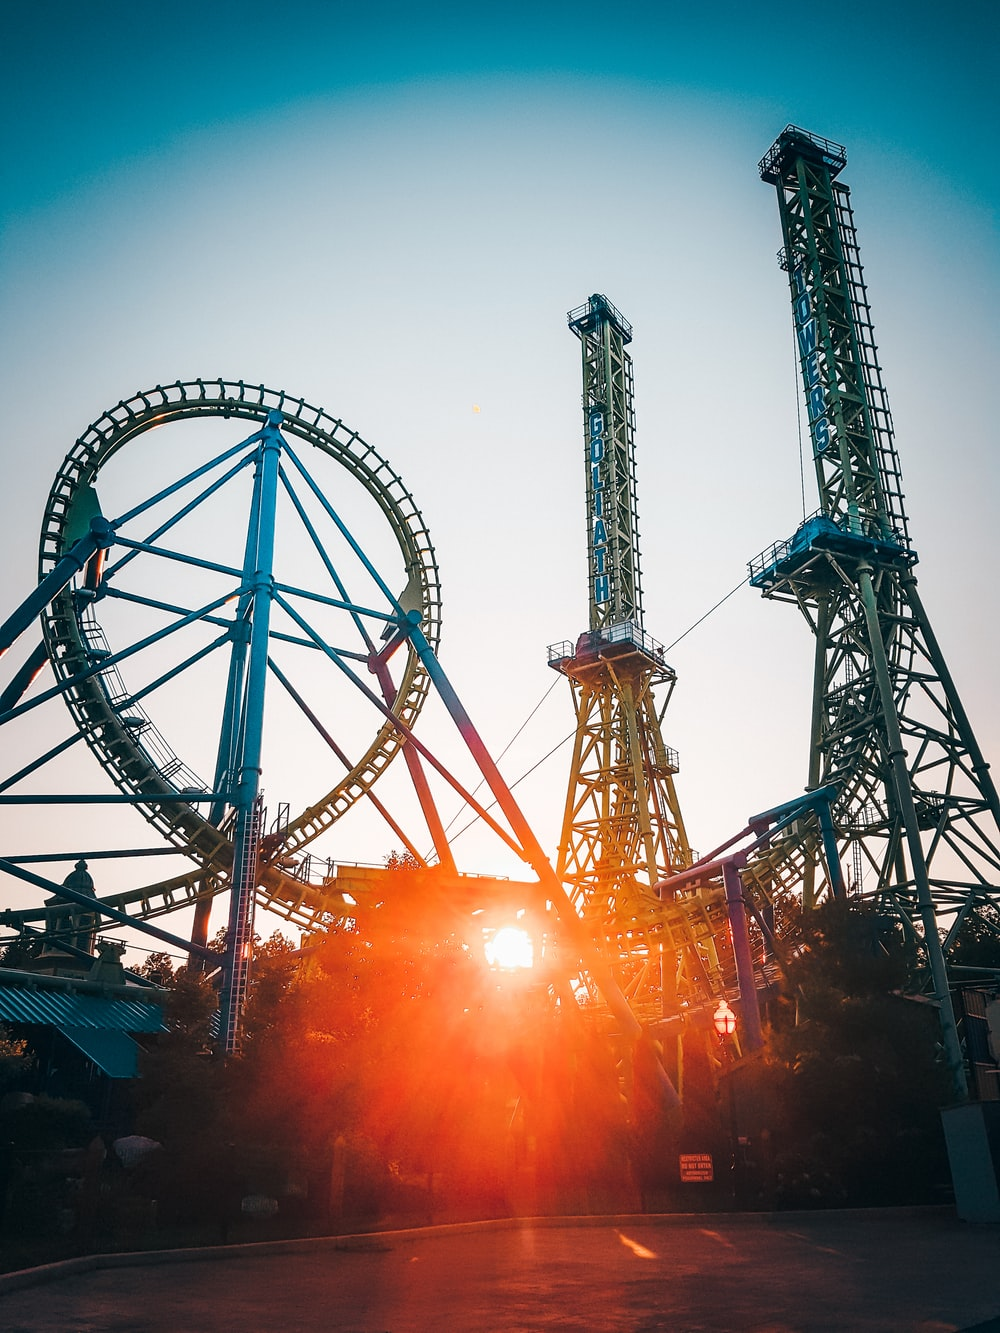 roller coaster ride with sun rays